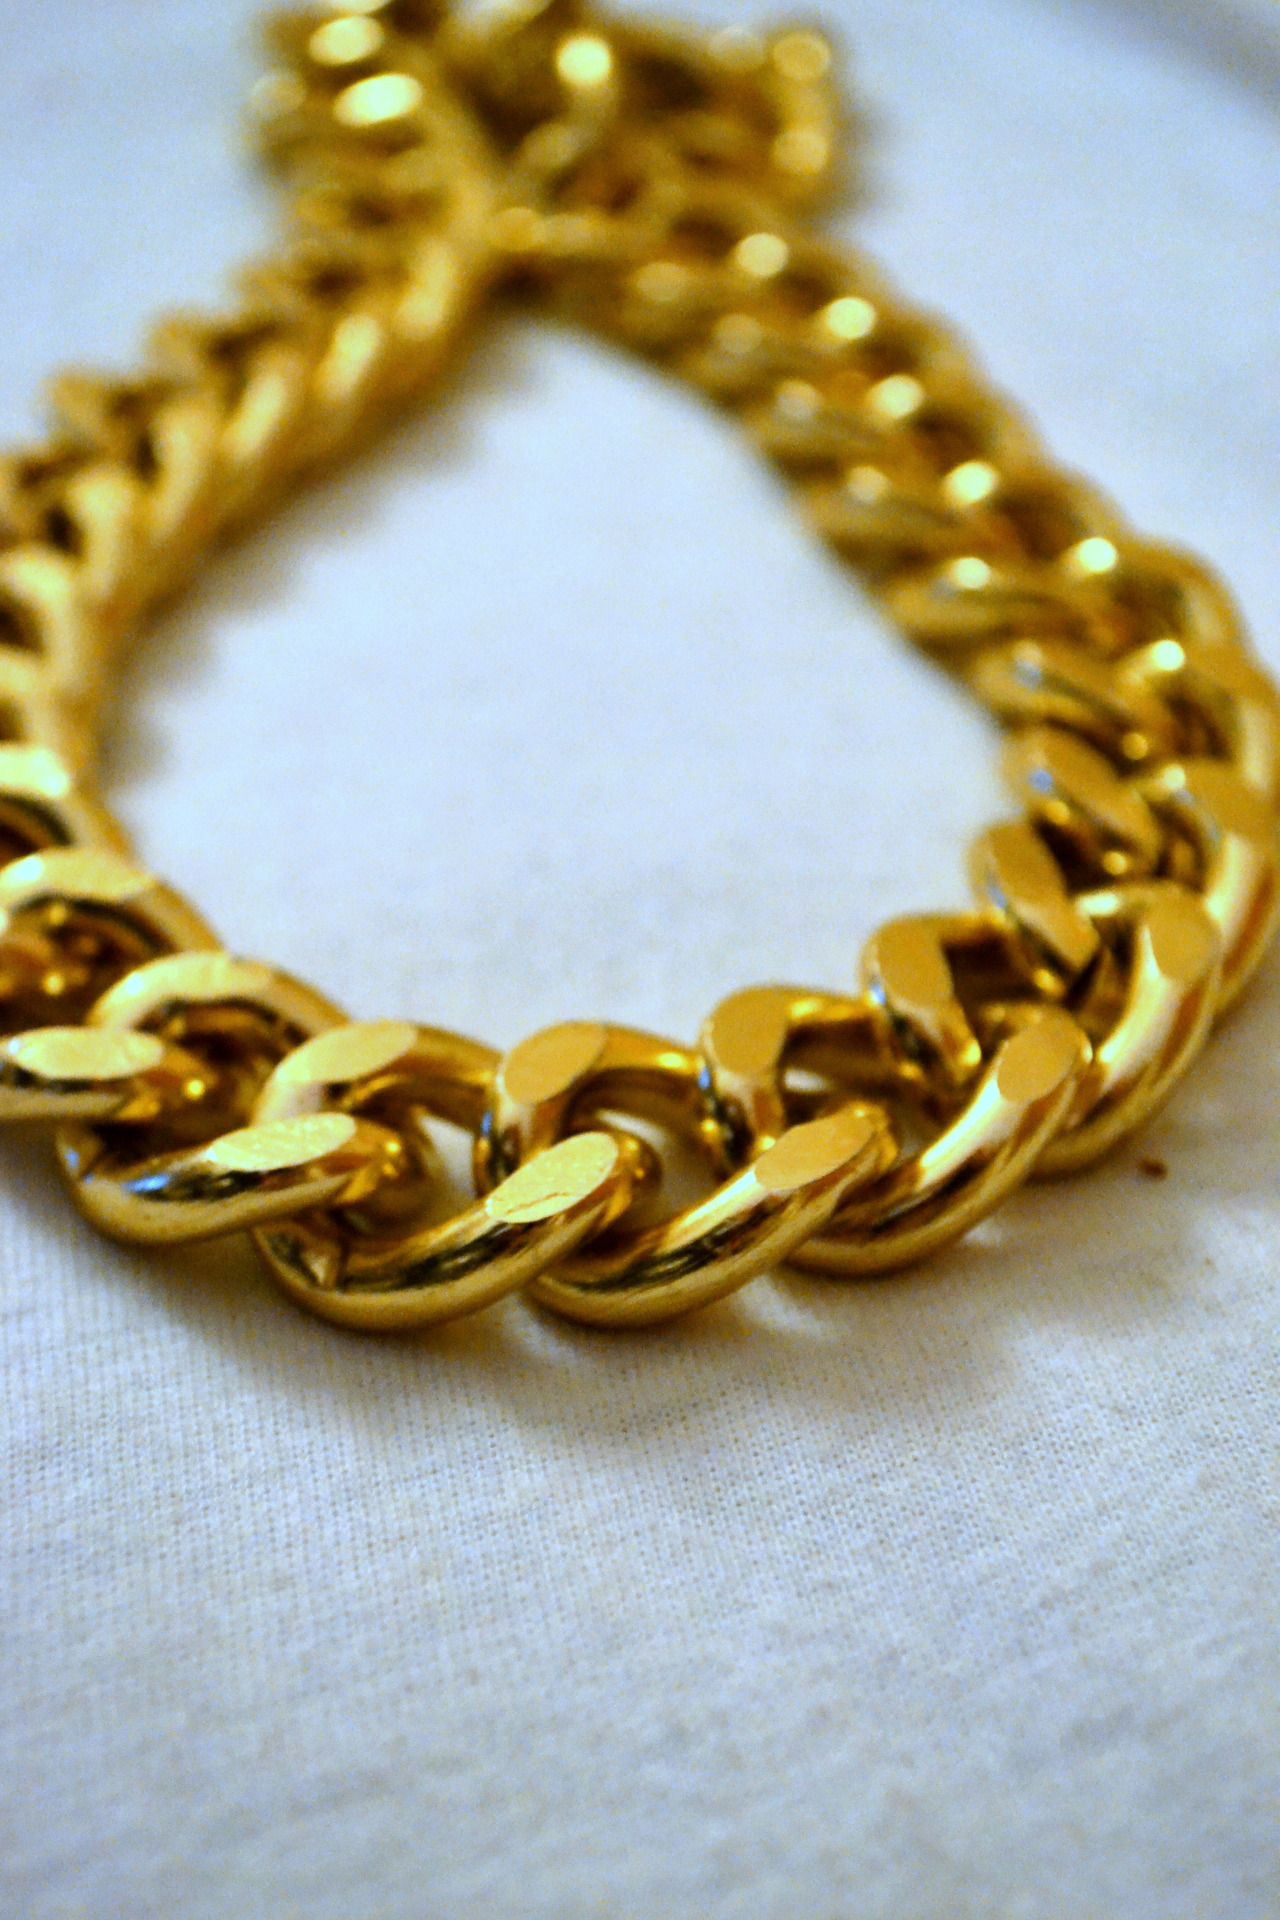 chella-pus:  My gold chain